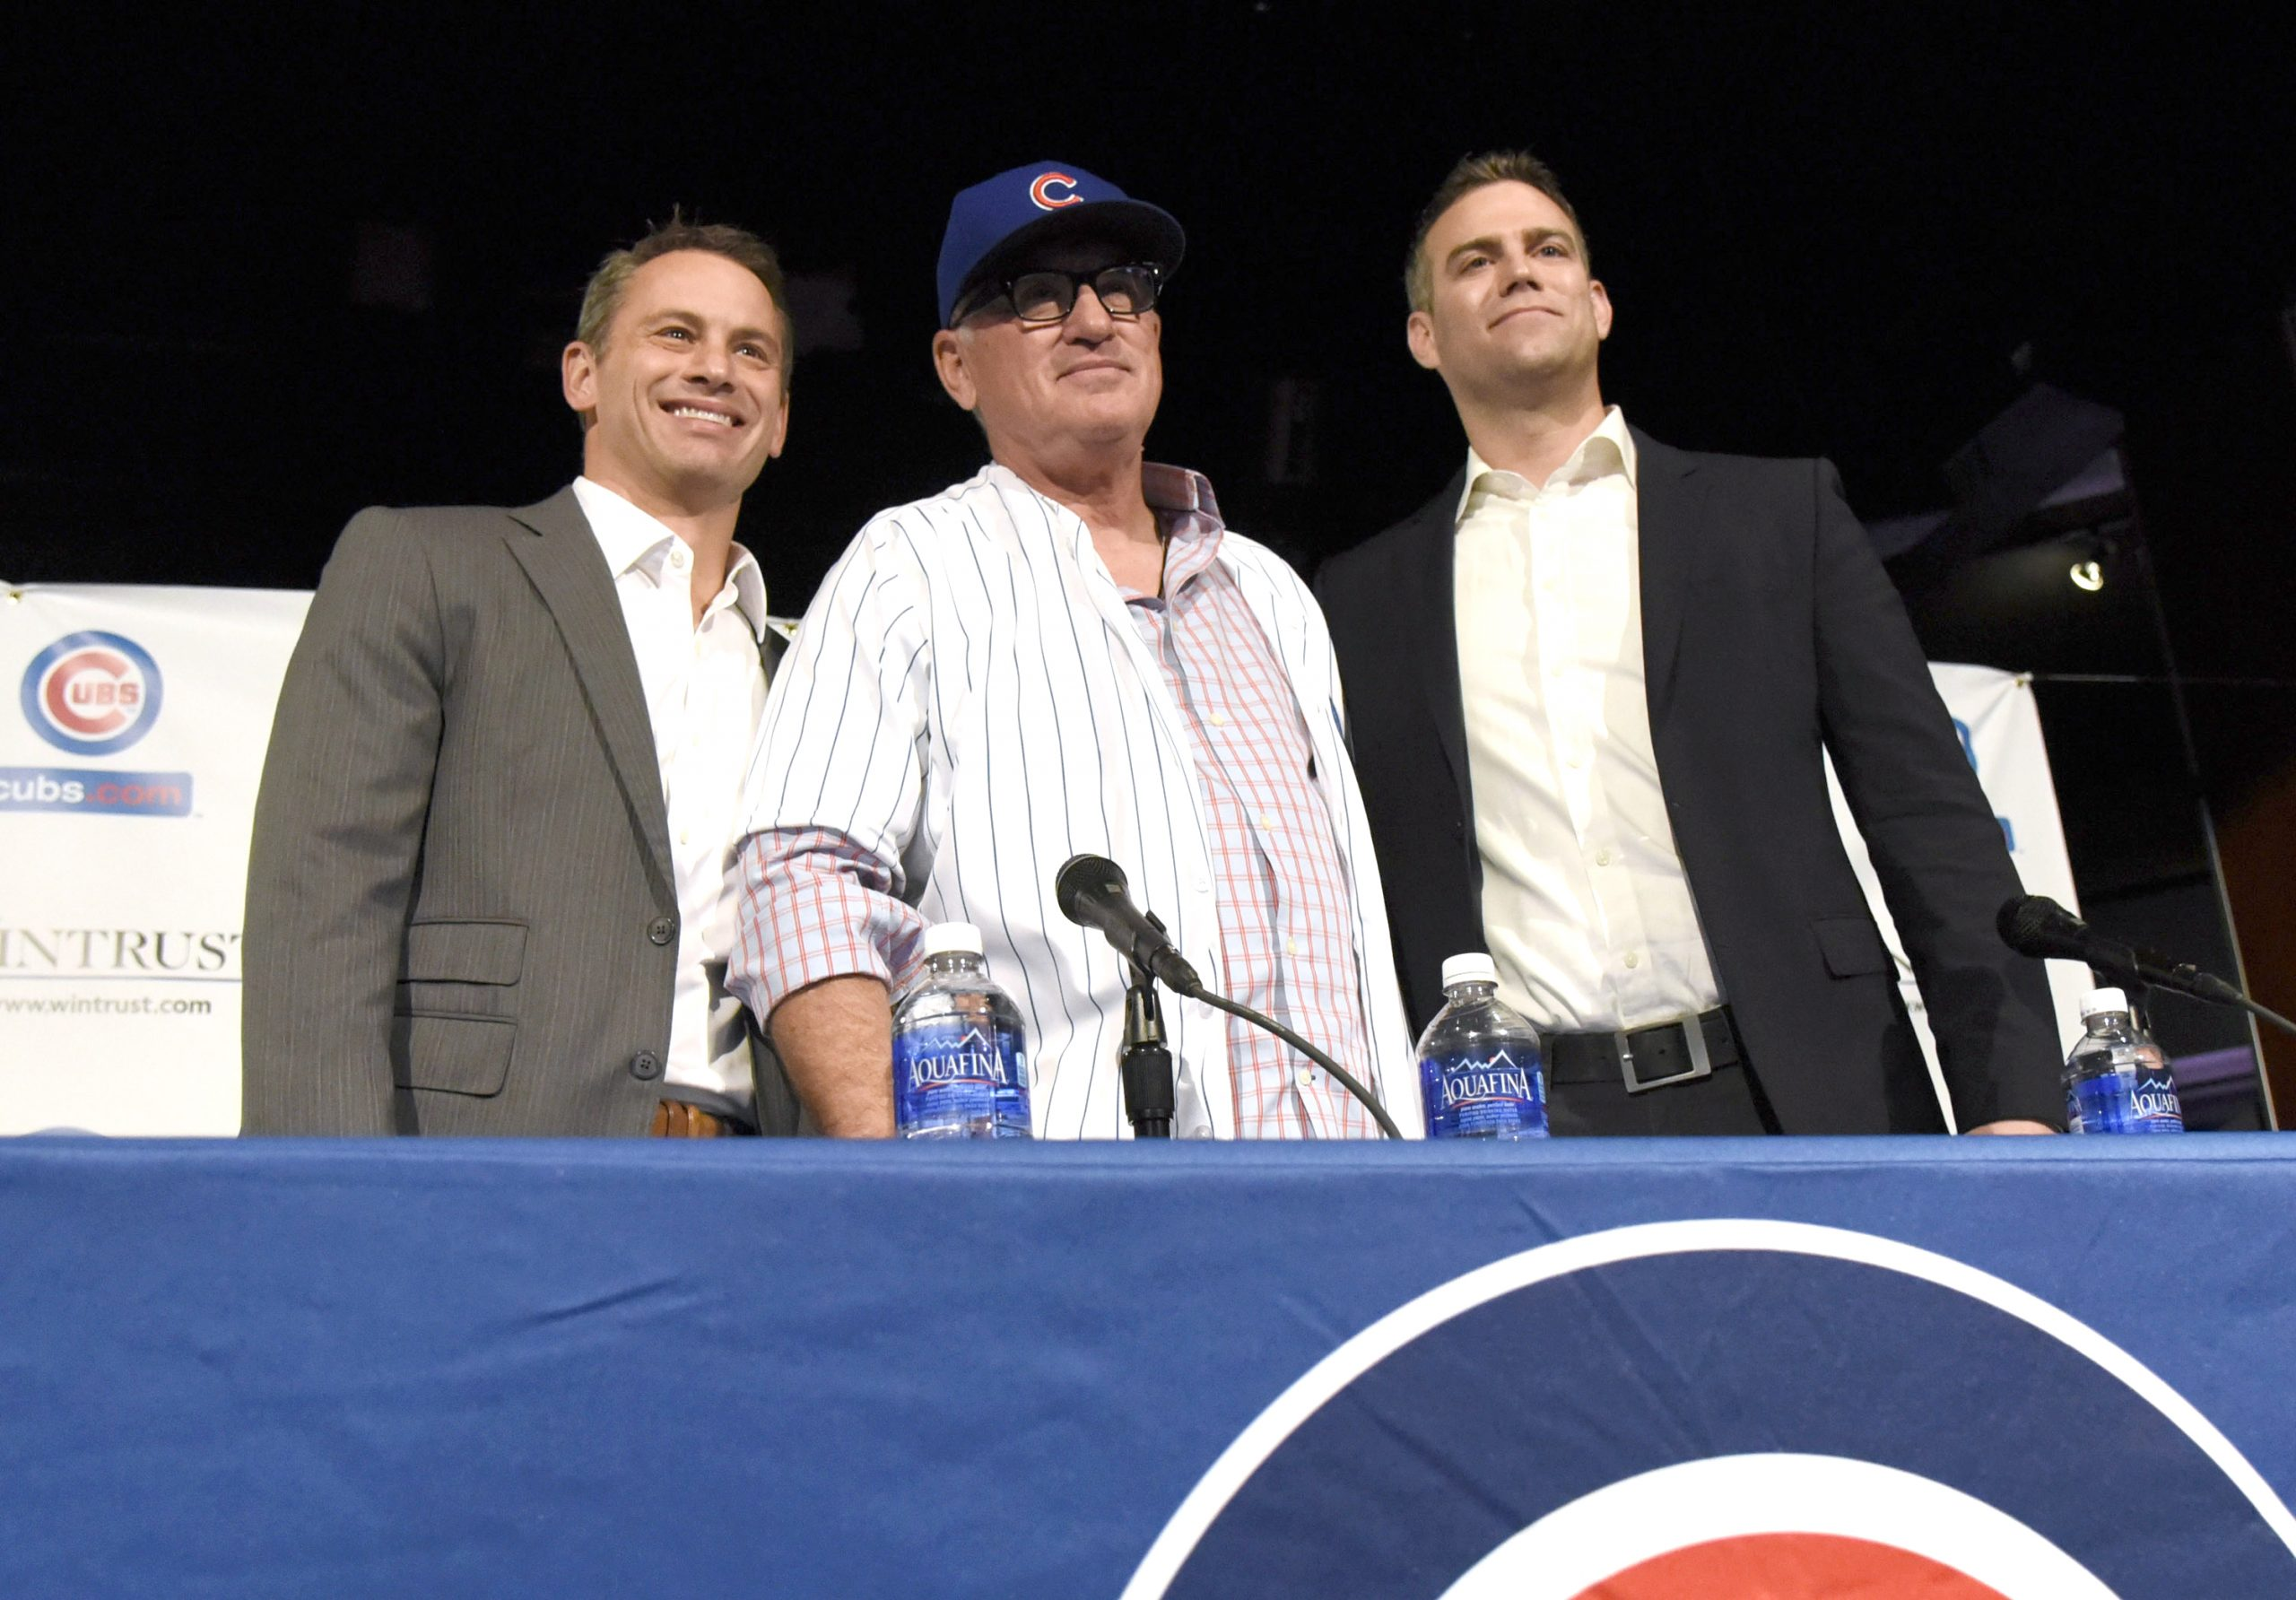 Cubs' general manager Jed Hoyer (left) and team president Theo Epstein (right)  introduced Maddon as Cubs manager last October. Maddon owns a camper he named Eddie, where he played host to Hoyer and Epstein before he was hired.